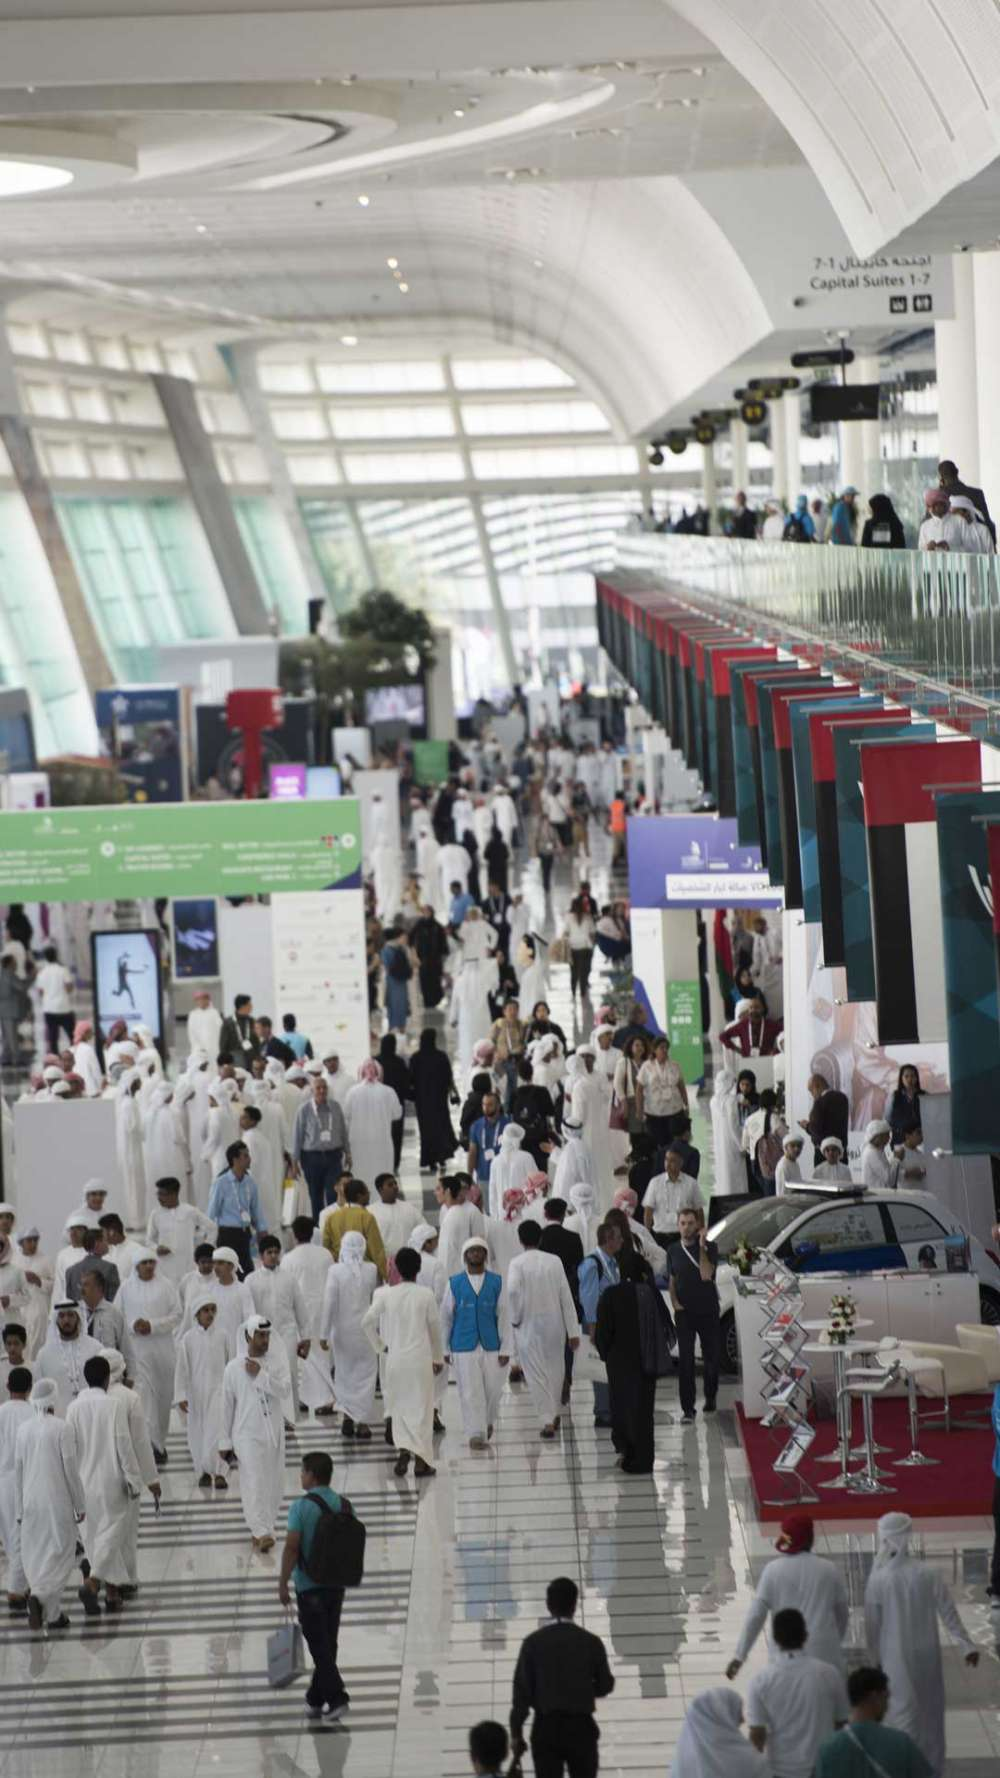 The concourse at ADNEC during WorldSkills Abu Dhabi 2017